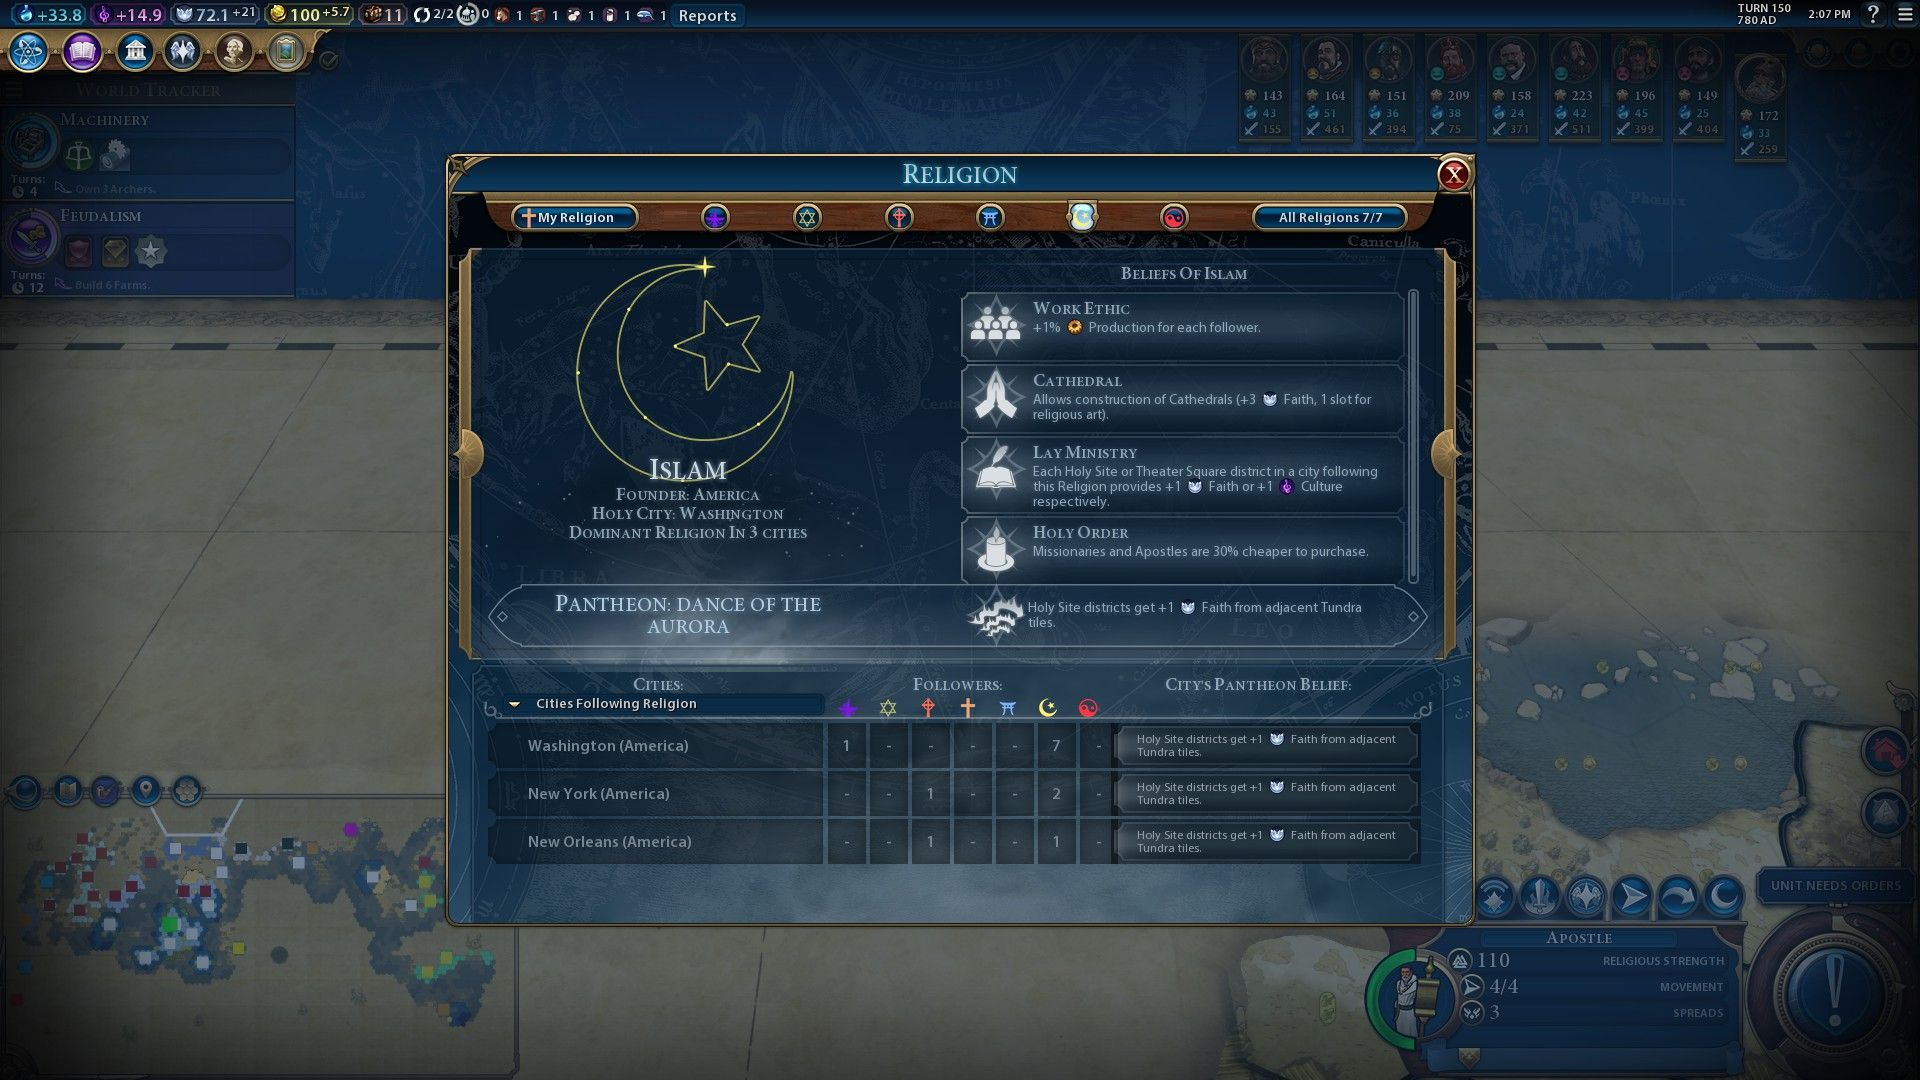 Oh the irony. CivilizationBeyondEarth gaming